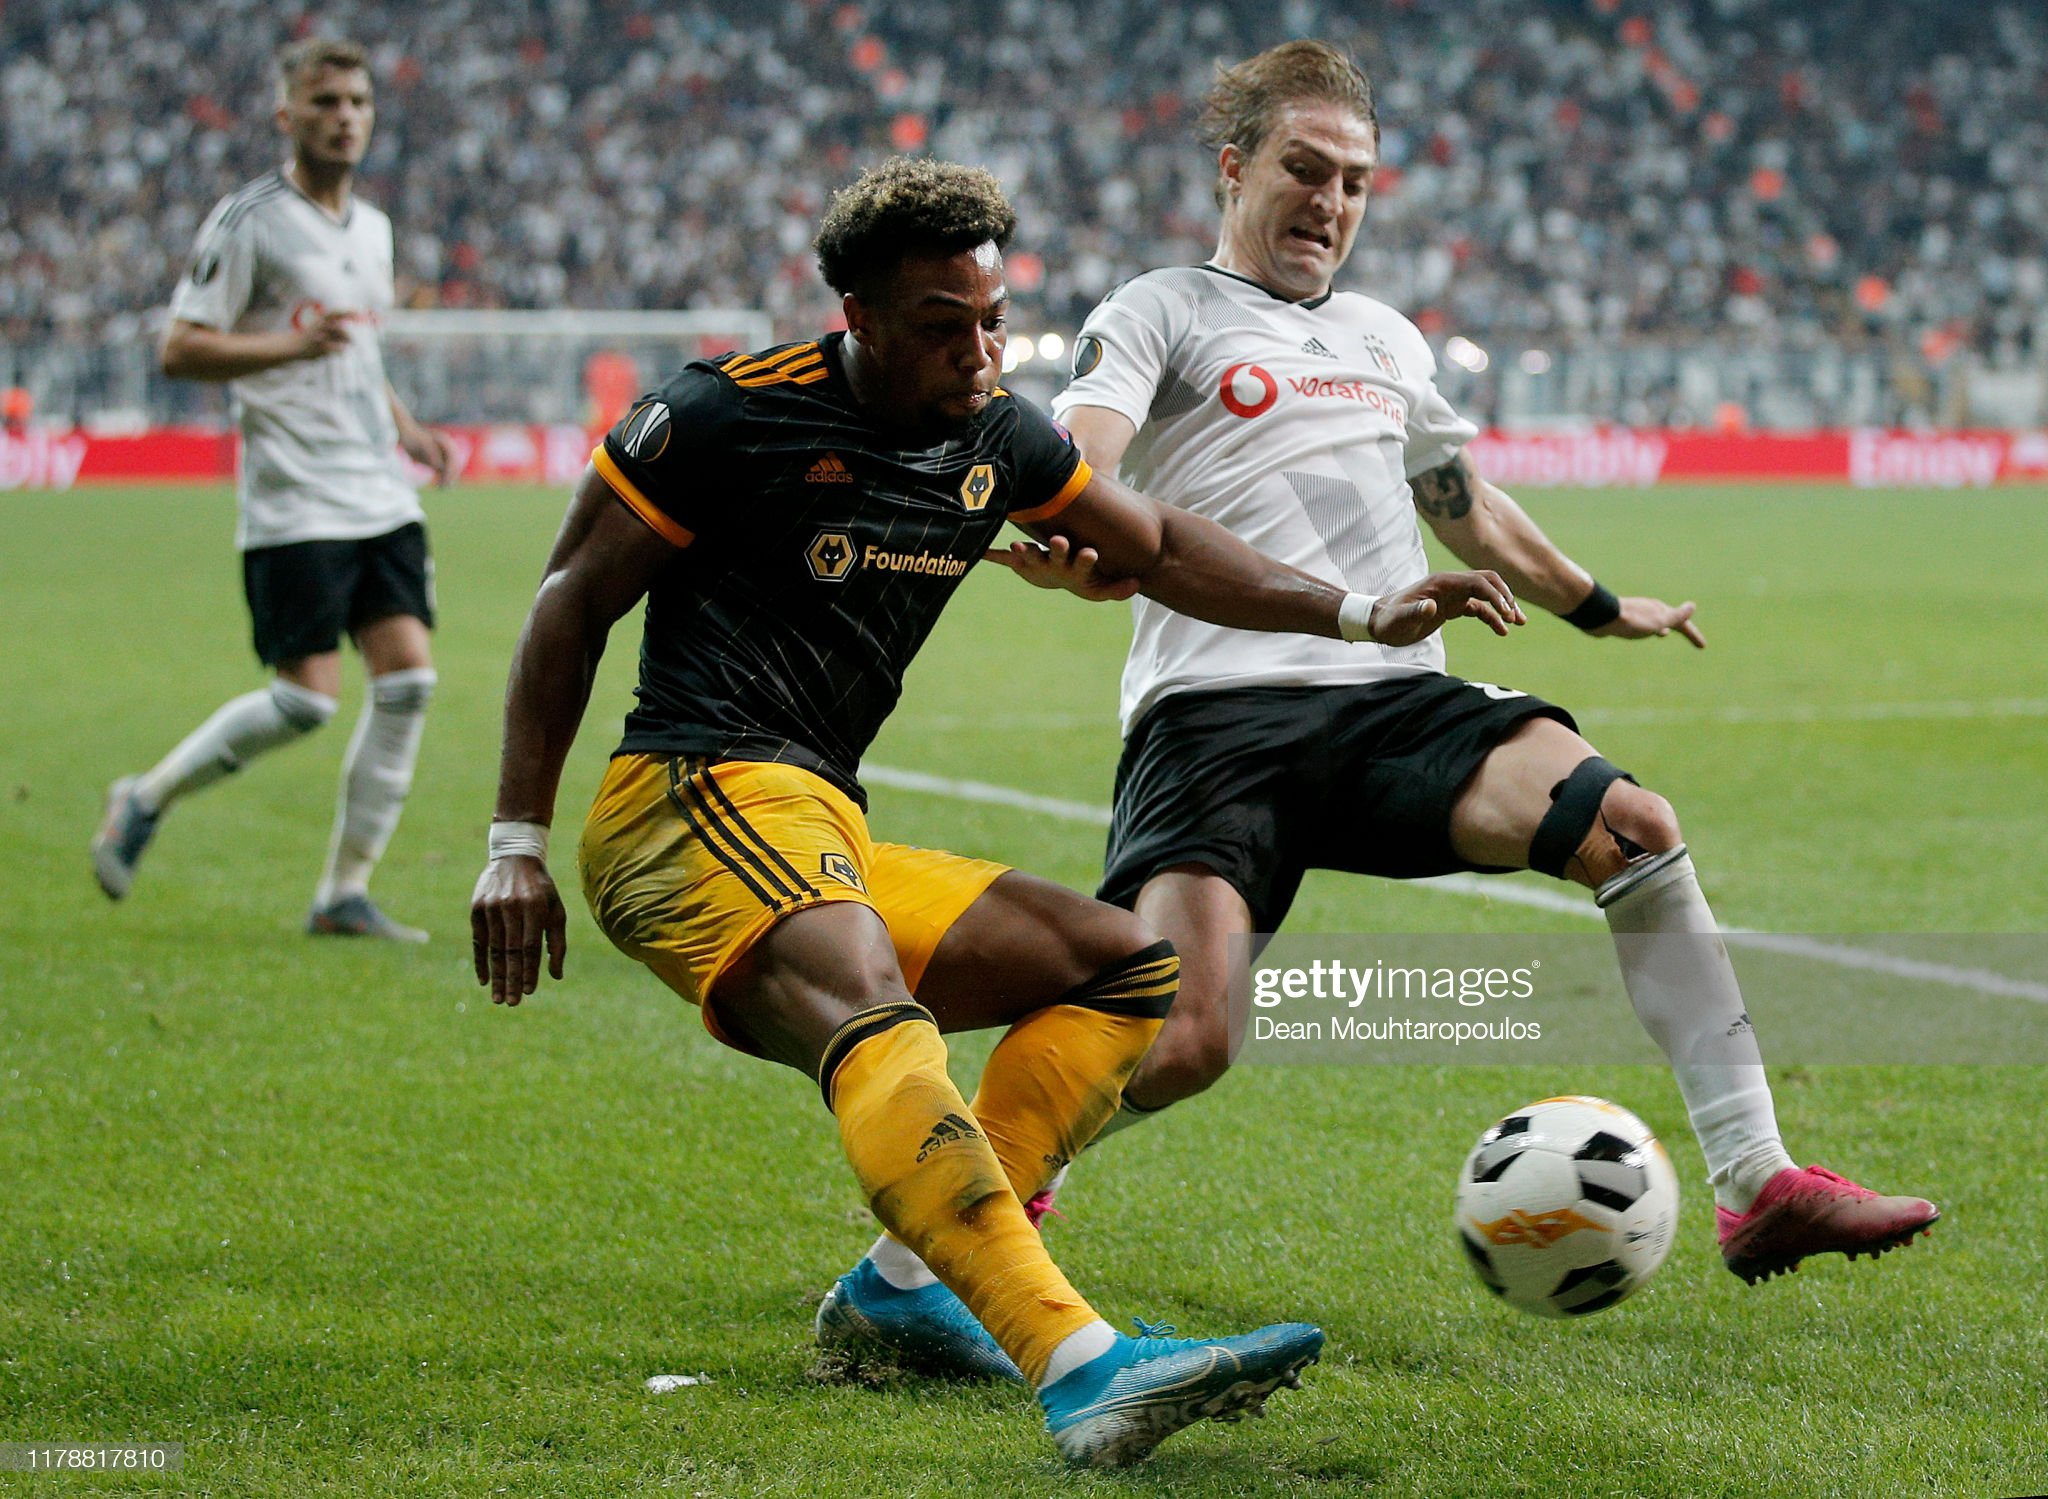 Wolves v Besiktas preview, prediction and odds